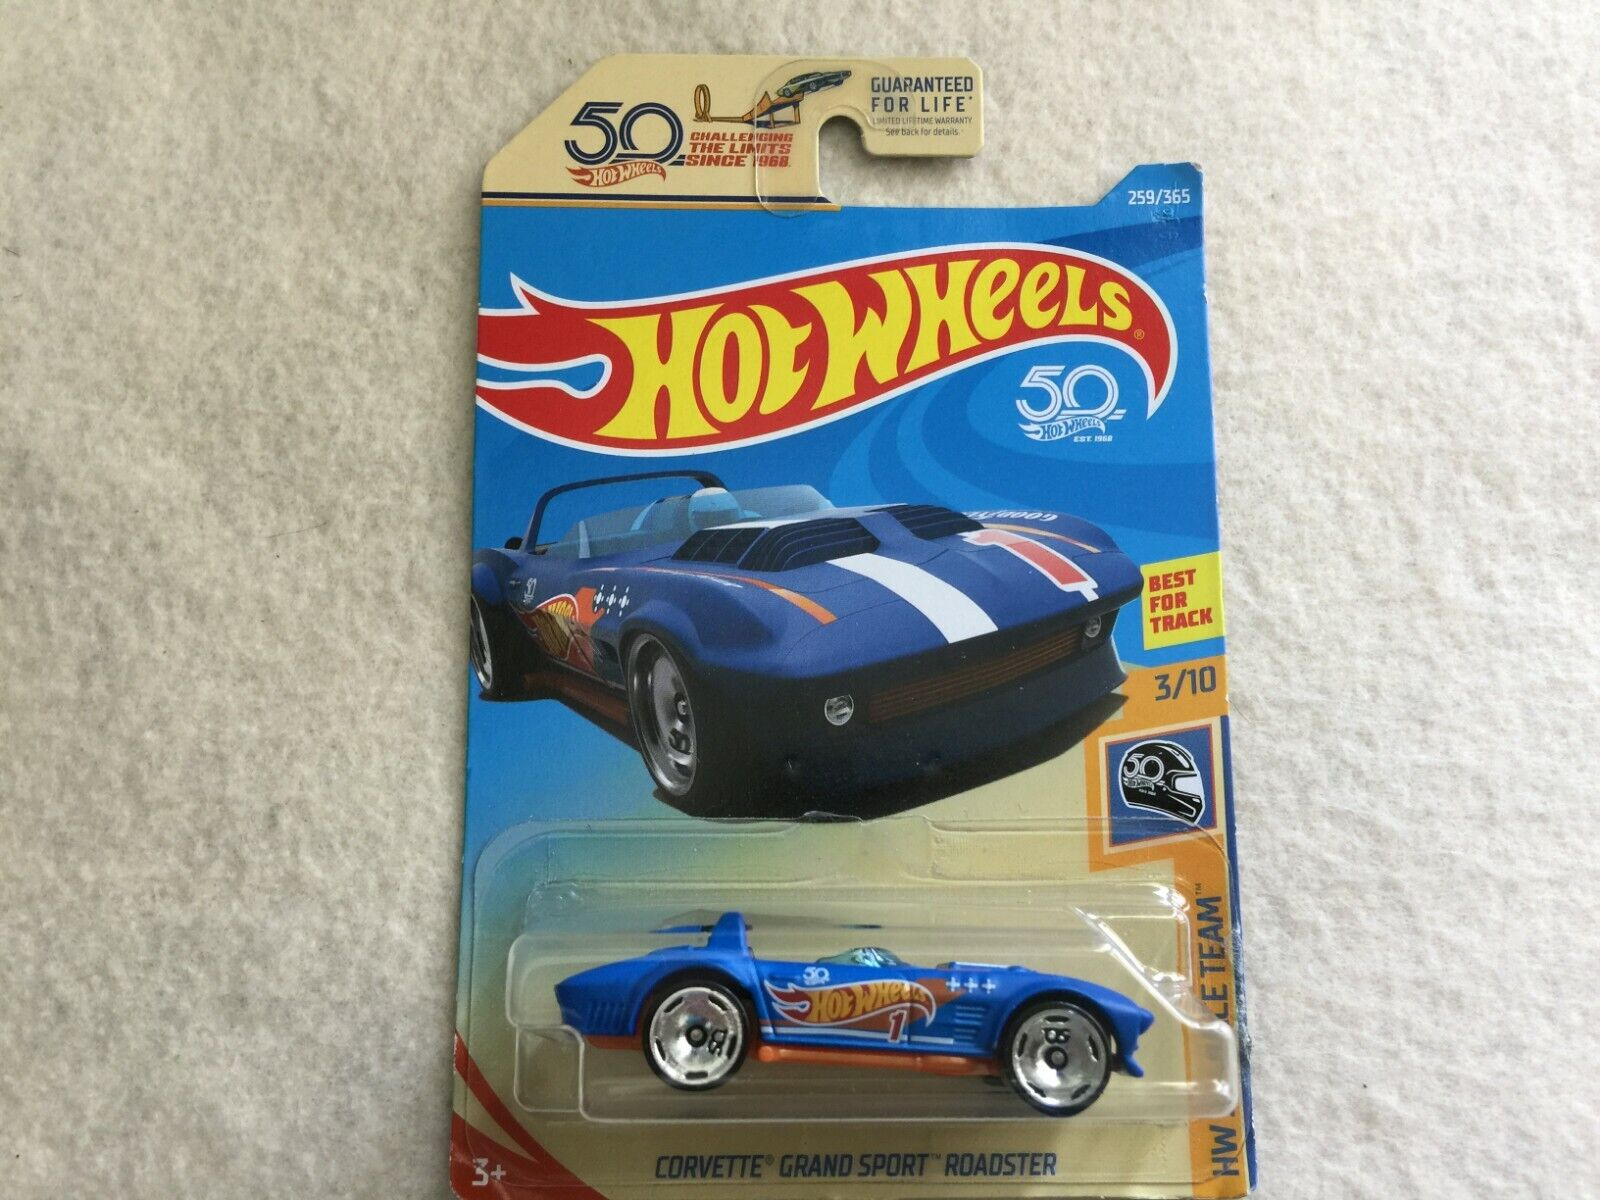 2018 HOT WHEELS 50TH RACE TEAM Corvette Grand Sport Roadster LOT OF 6 Blue Lot